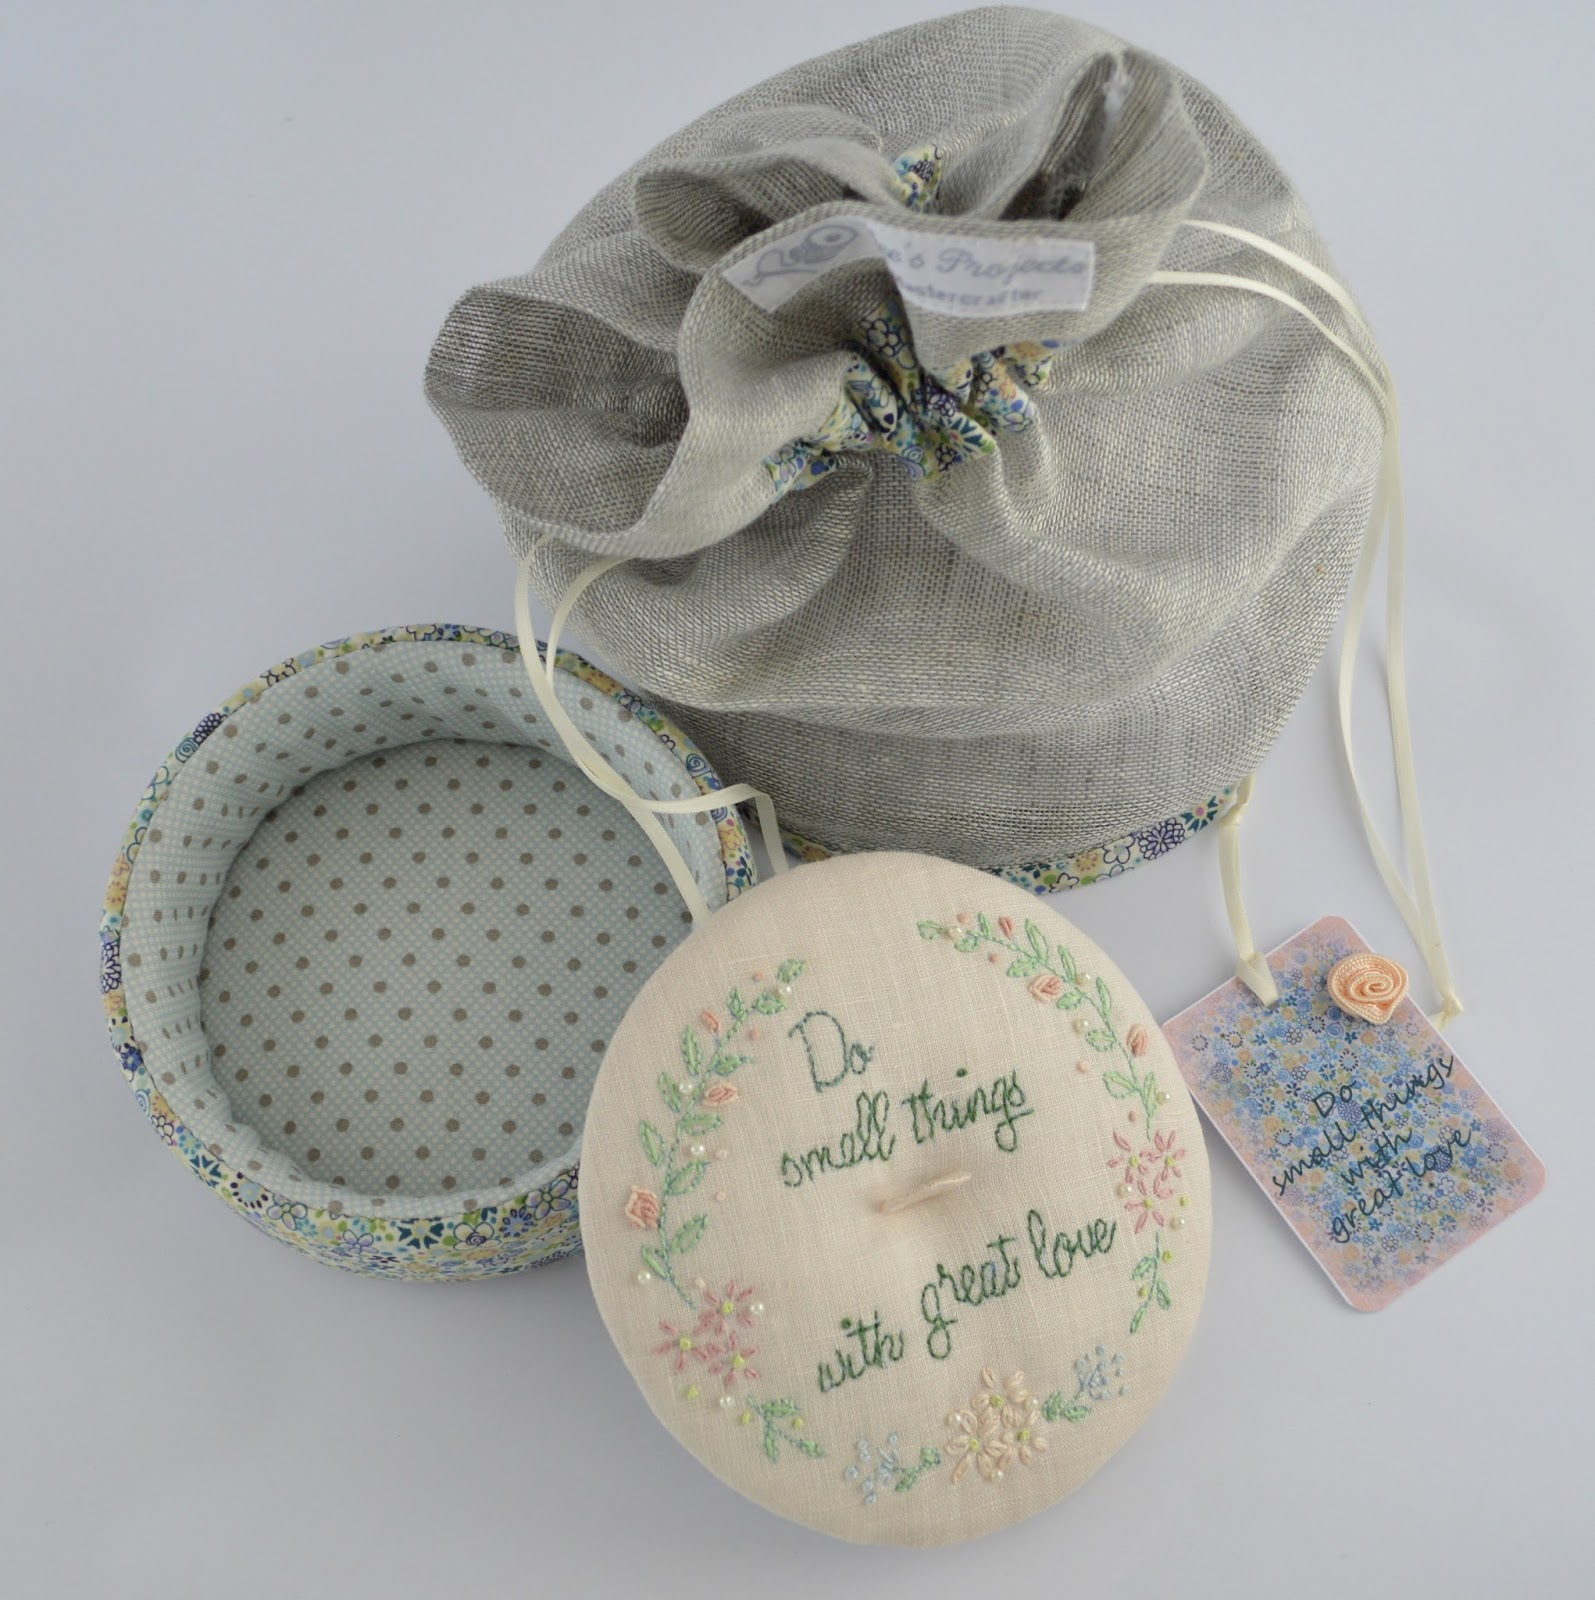 Gee S Projects Nanacompany Swap Trinket Box Linen Bag And